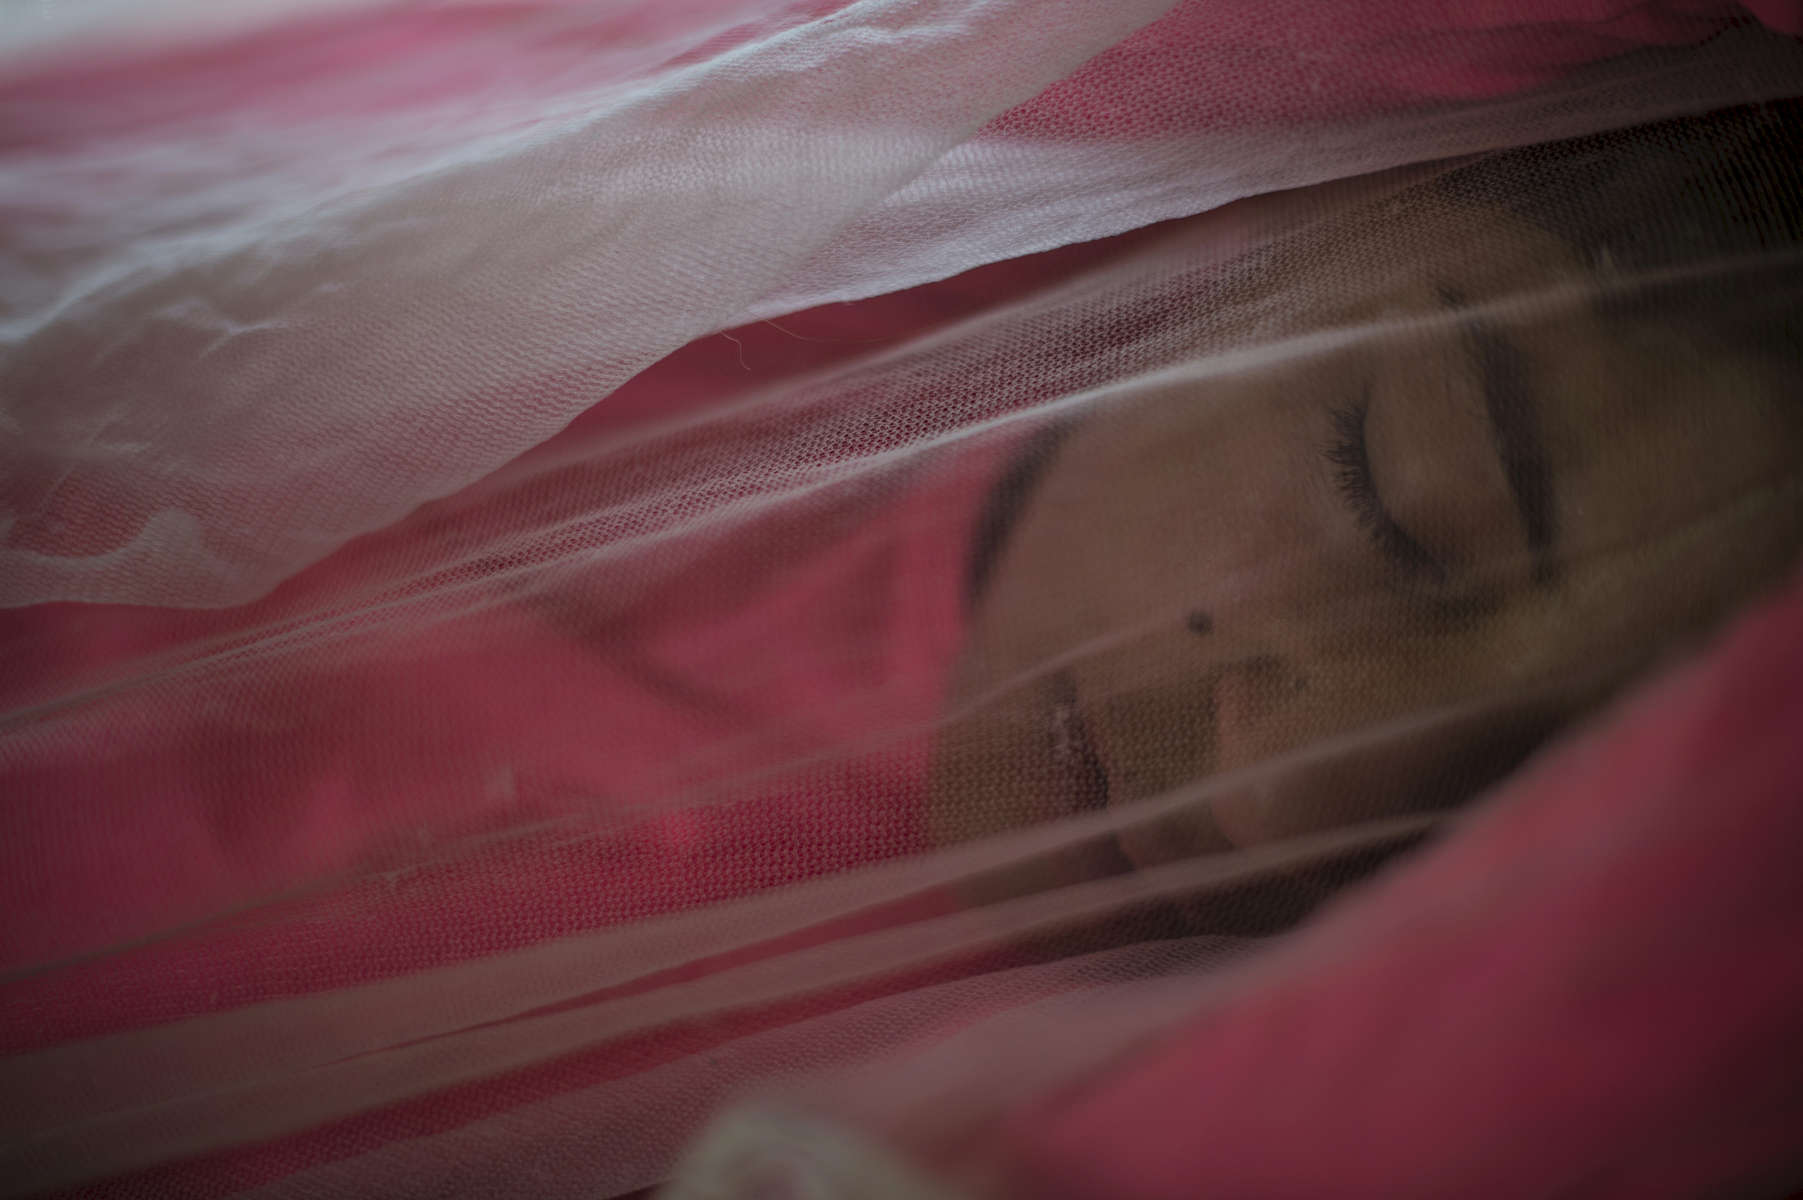 Hanaa takes a nap under a mosquito net in her tent in the informal tented settlement she lives in with her family after a long morning picking cucumbers from dawn with other Syrian refugees,in the Bekaa Valley, between the city of Zahle and Baalbak, in Lebanon, August 1, 2015.  Hanaa and her family fled Syria in 2011 at the beginning of the Syrian civil war, and moved to this settlement two years ago, along with other Syrian refugees from Hasaka and the surrounding areas. Hanaa and other children in the settlement work for up to ten hours a day in agricultural lands owned by Lebanese in the area, and earn the equivalent of $5. per day.